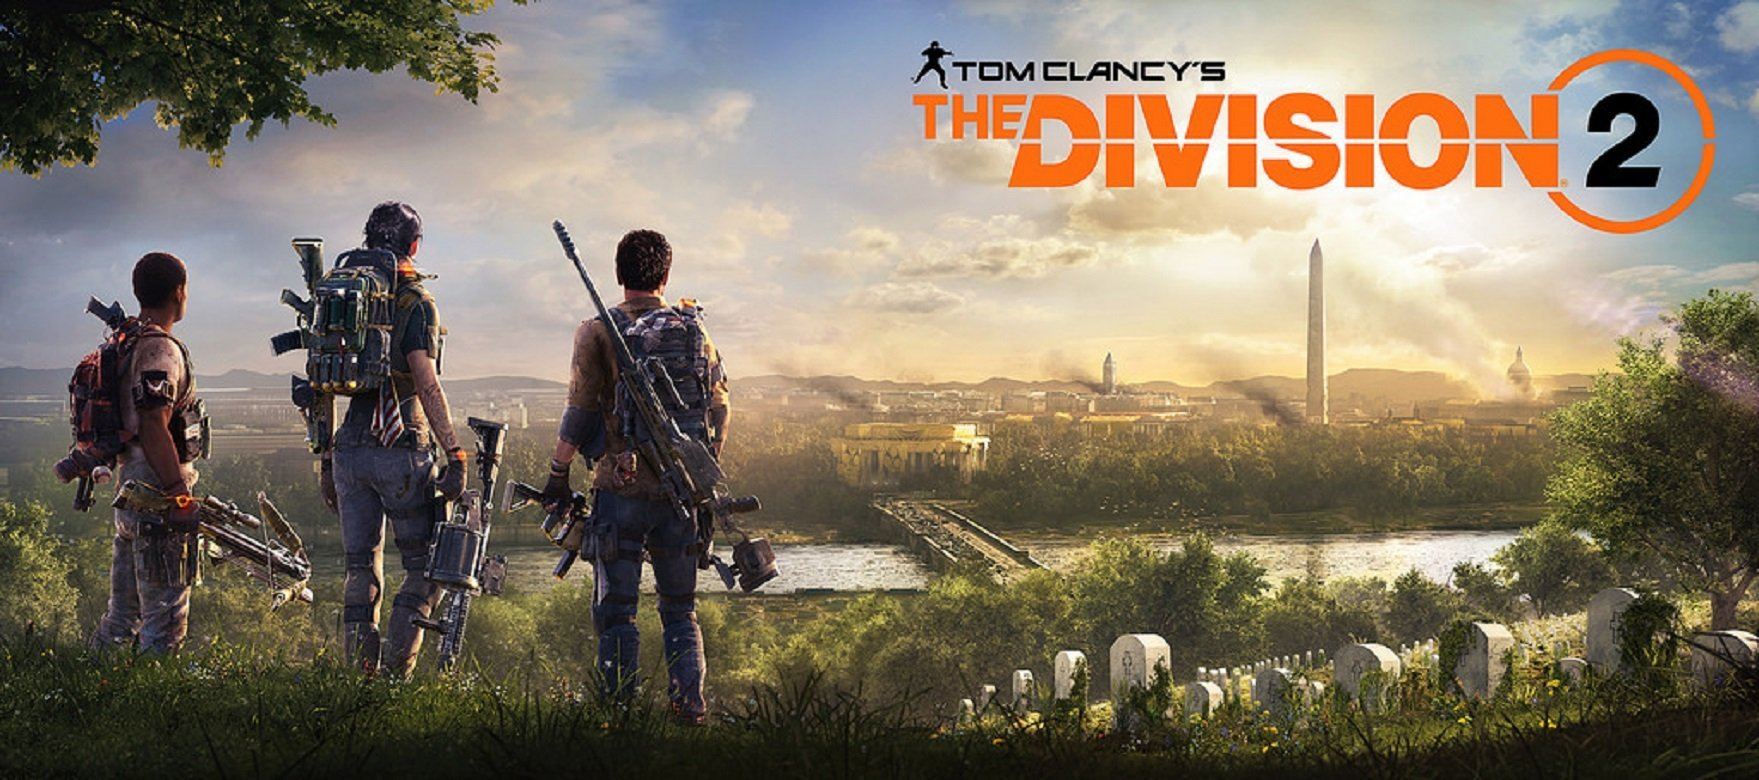 The Division 2 Has Released Patch 6.1 Notes That Detail Christmas Content, A New Hardcore Mode, And So Much More